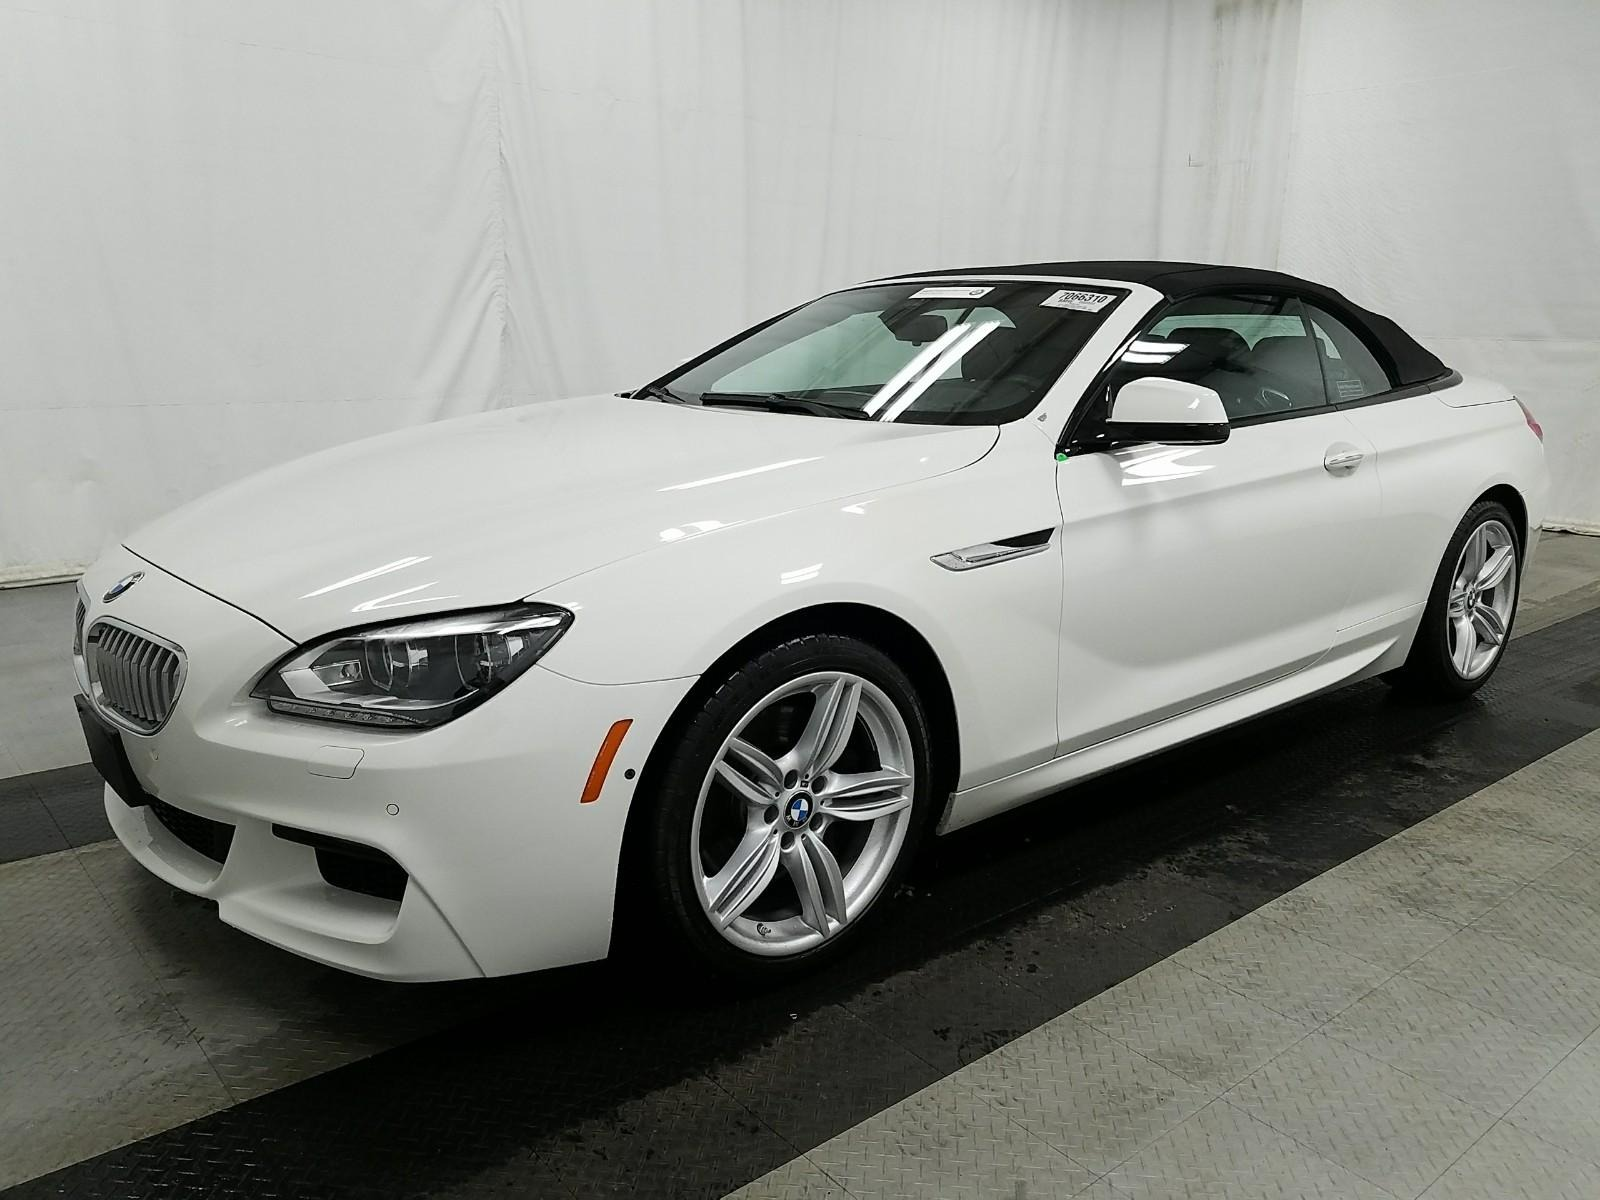 2015 bmw 6 series 650i xdrive convertible stock 18047 for sale near albany ny ny bmw dealer. Black Bedroom Furniture Sets. Home Design Ideas